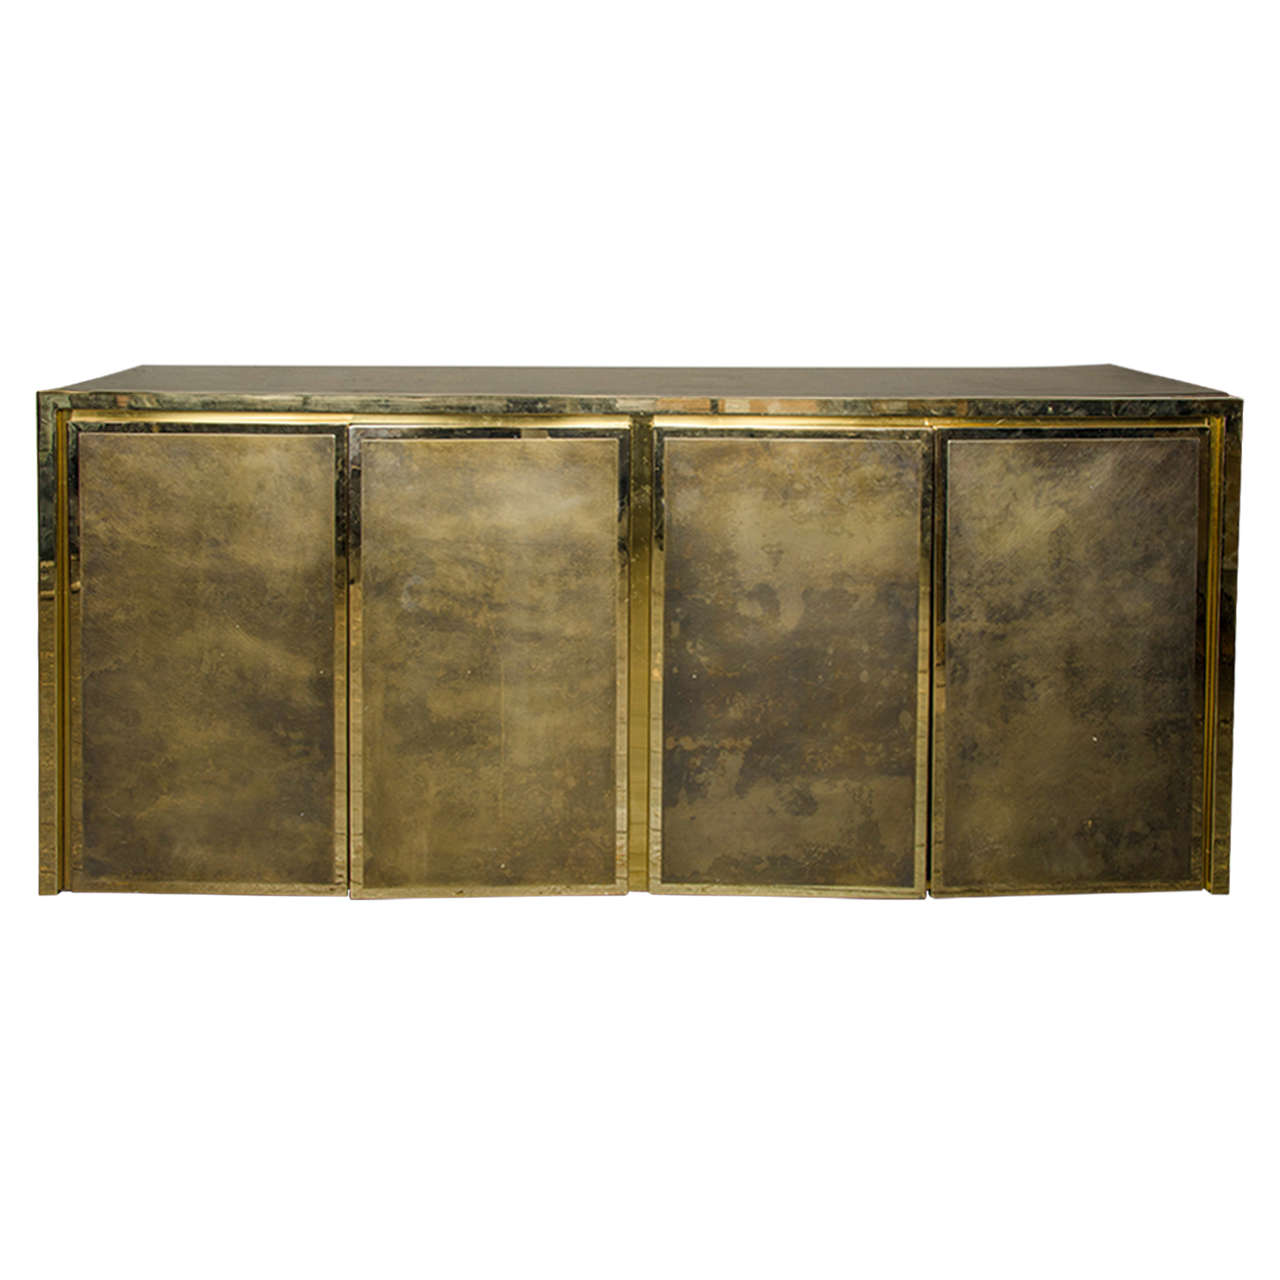 belgian metal sideboard at stdibs - belgian metal sideboard